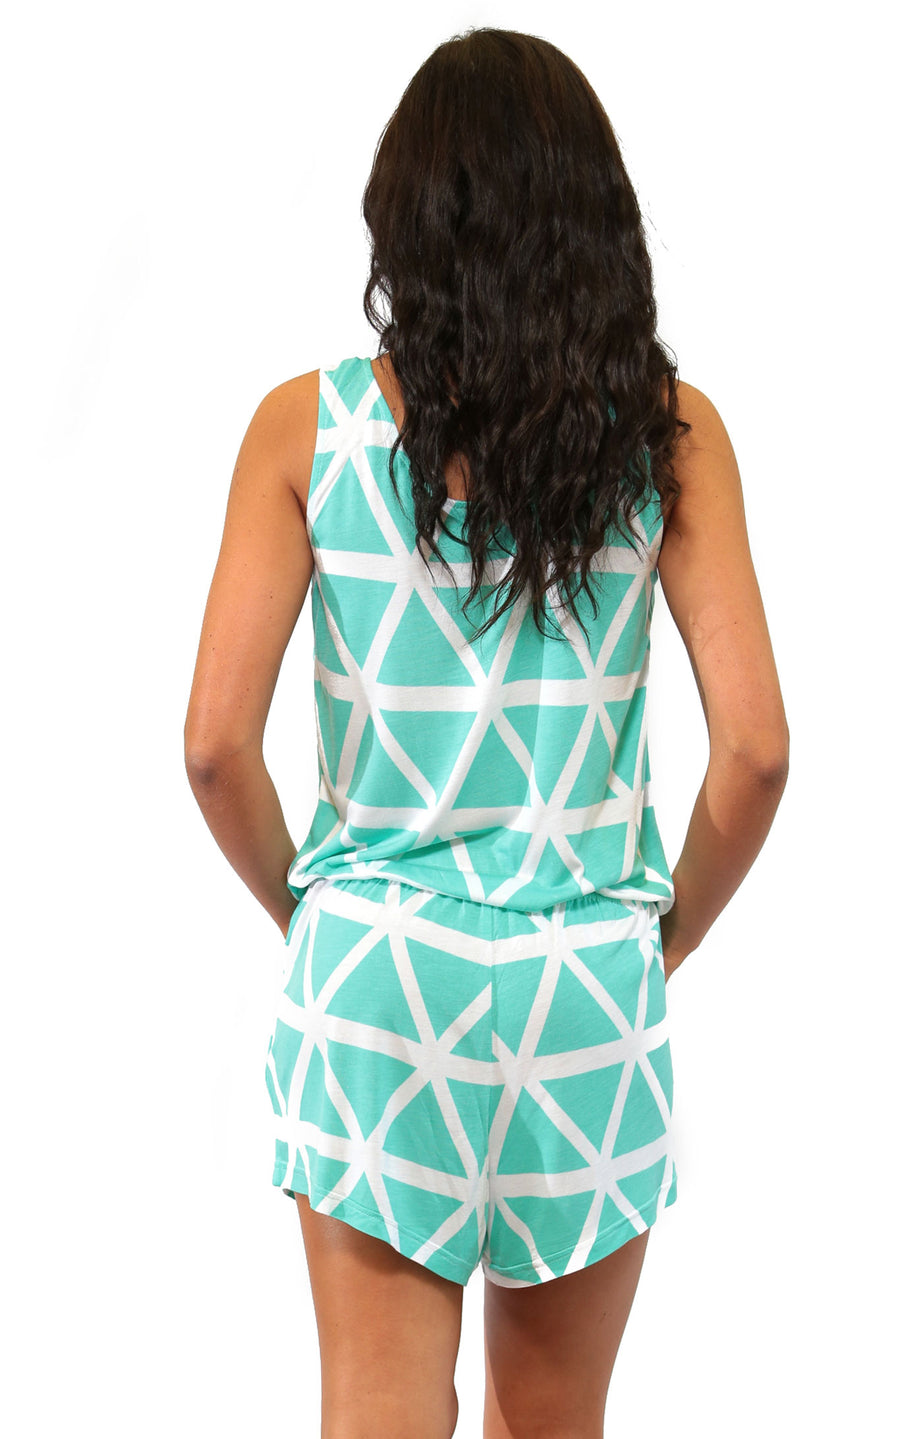 All For Color-Aqua Breeze Callie Romper - FINAL SALE-Rompers